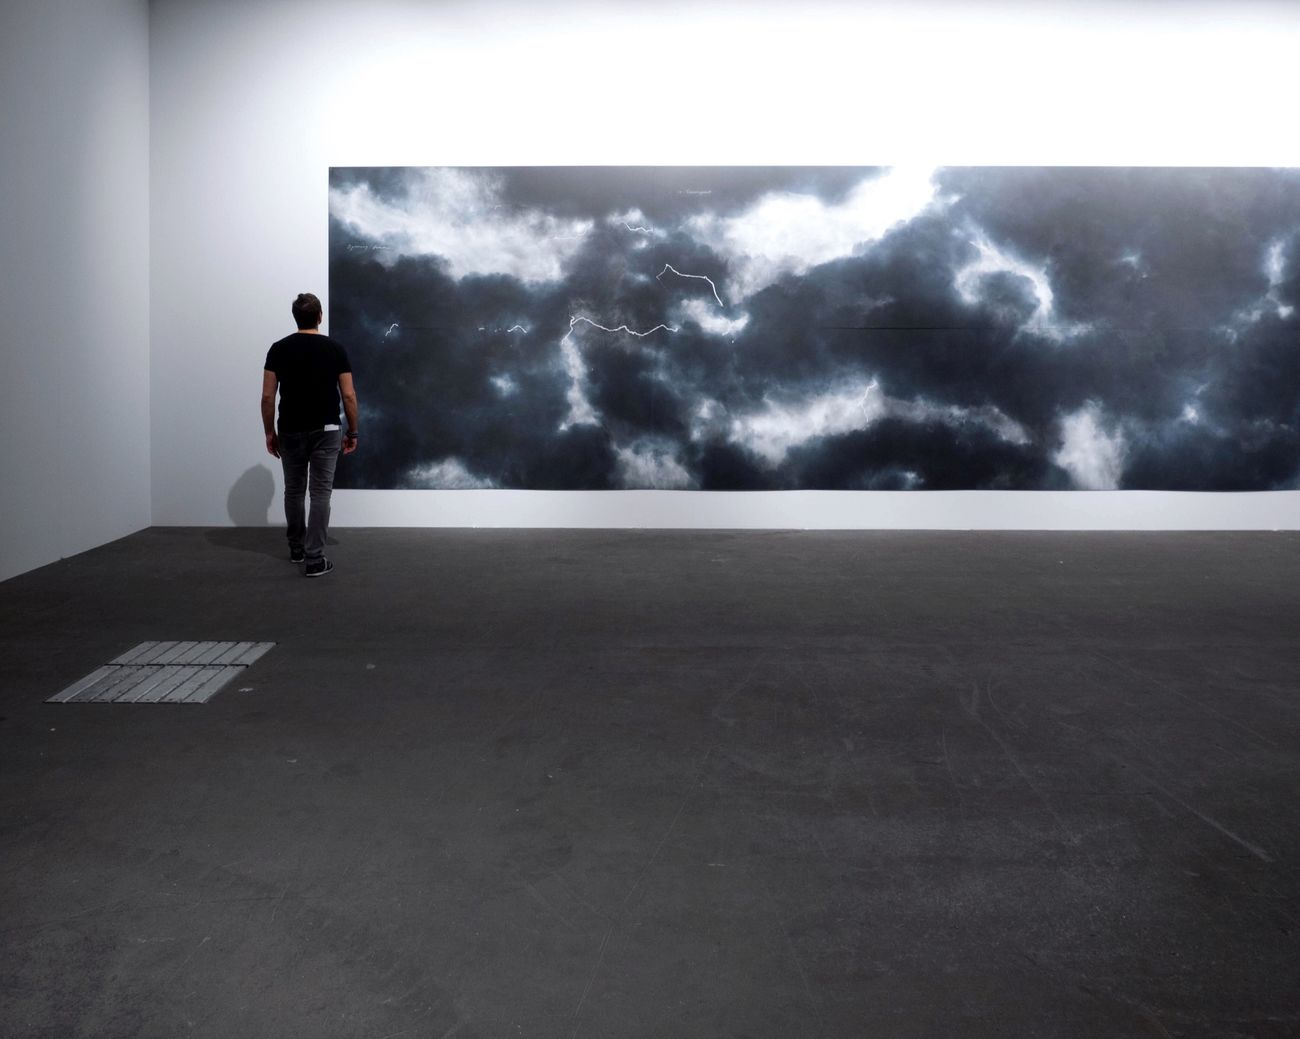 Art Basel / Tacita Dean Full Length One Person Rear View Cloud - Sky Men Real People One Man Only Day Storm Cloud Art Exposition Sky Adult Young Adult Only Men People Adults Only The Street Photographer - 2017 EyeEm Awards